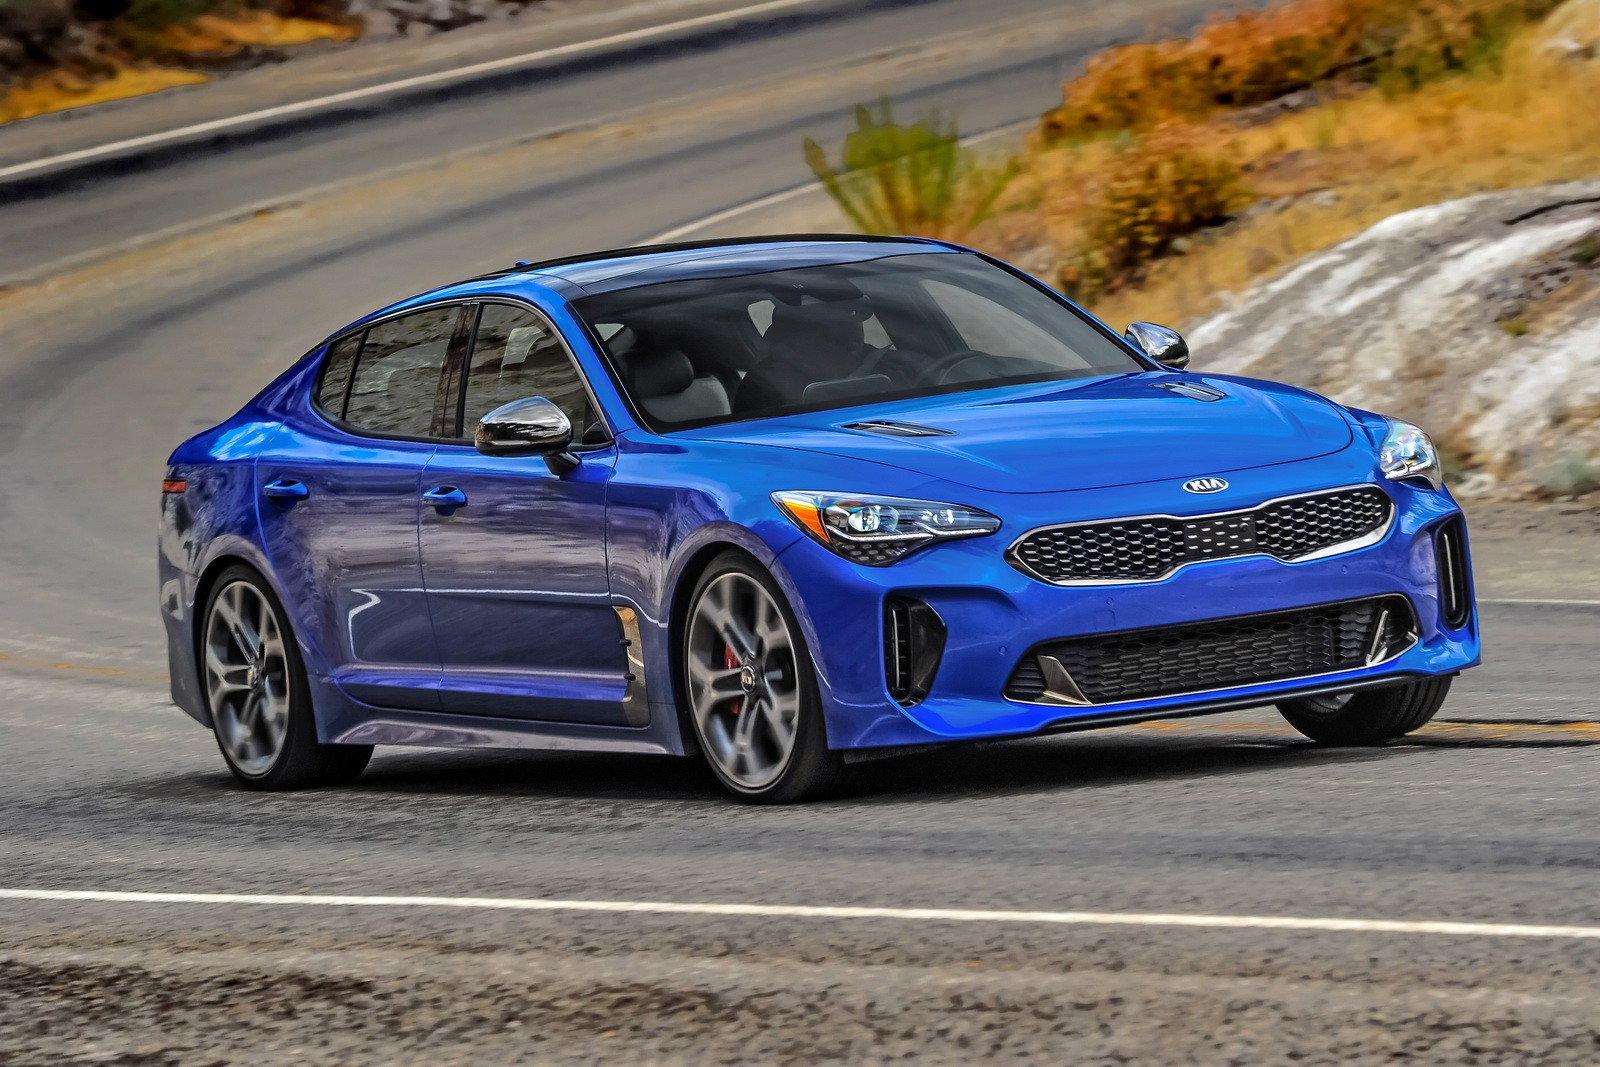 2018 kia stinger price list reveals base model starts at 31 900 in the u s autoevolution. Black Bedroom Furniture Sets. Home Design Ideas